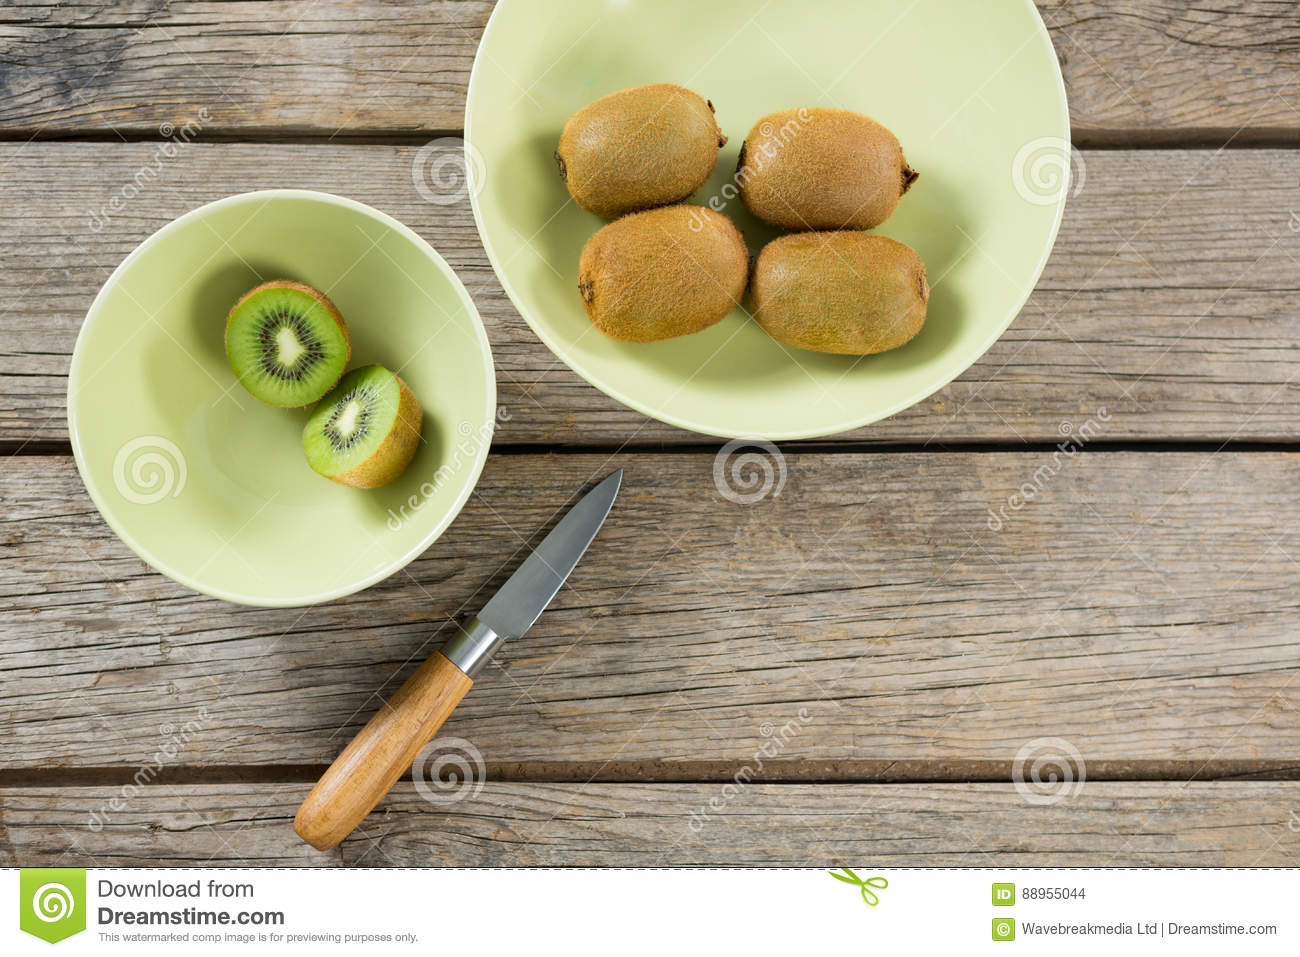 Kiwis in bowl with knife on wooden table